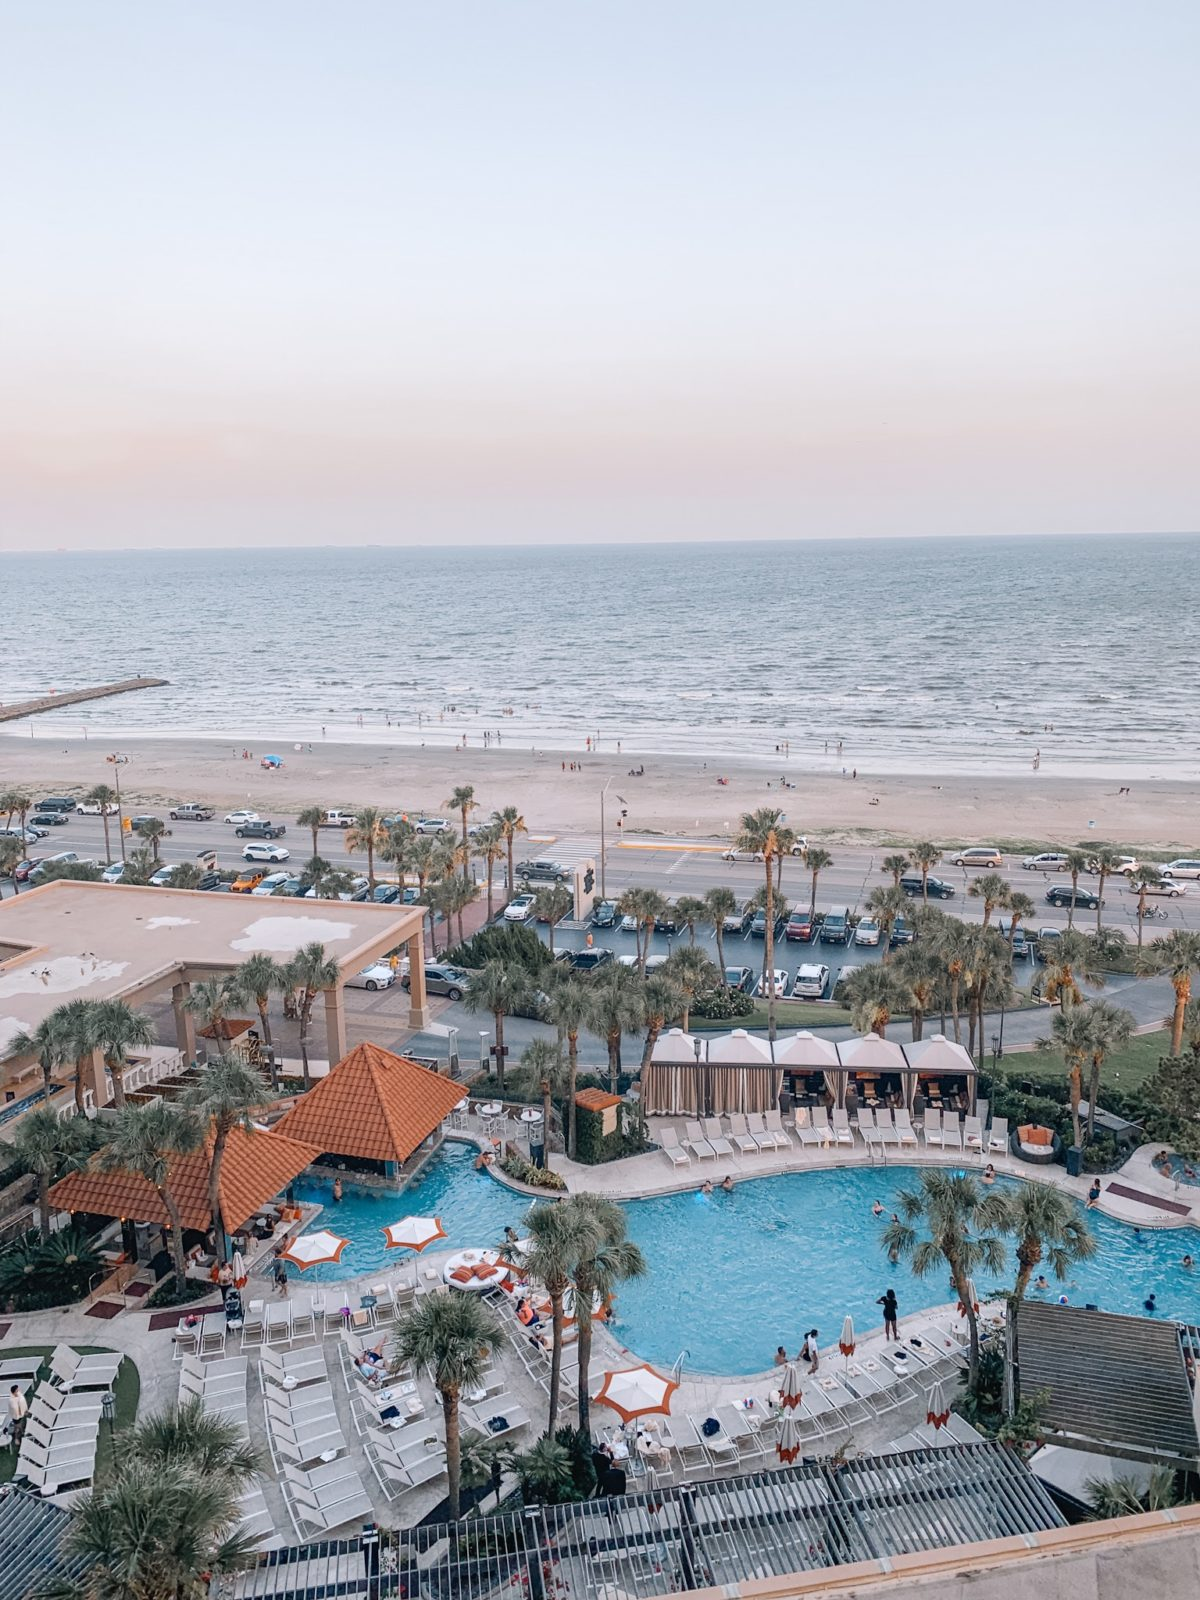 48 Hours in Galveston - Beach View